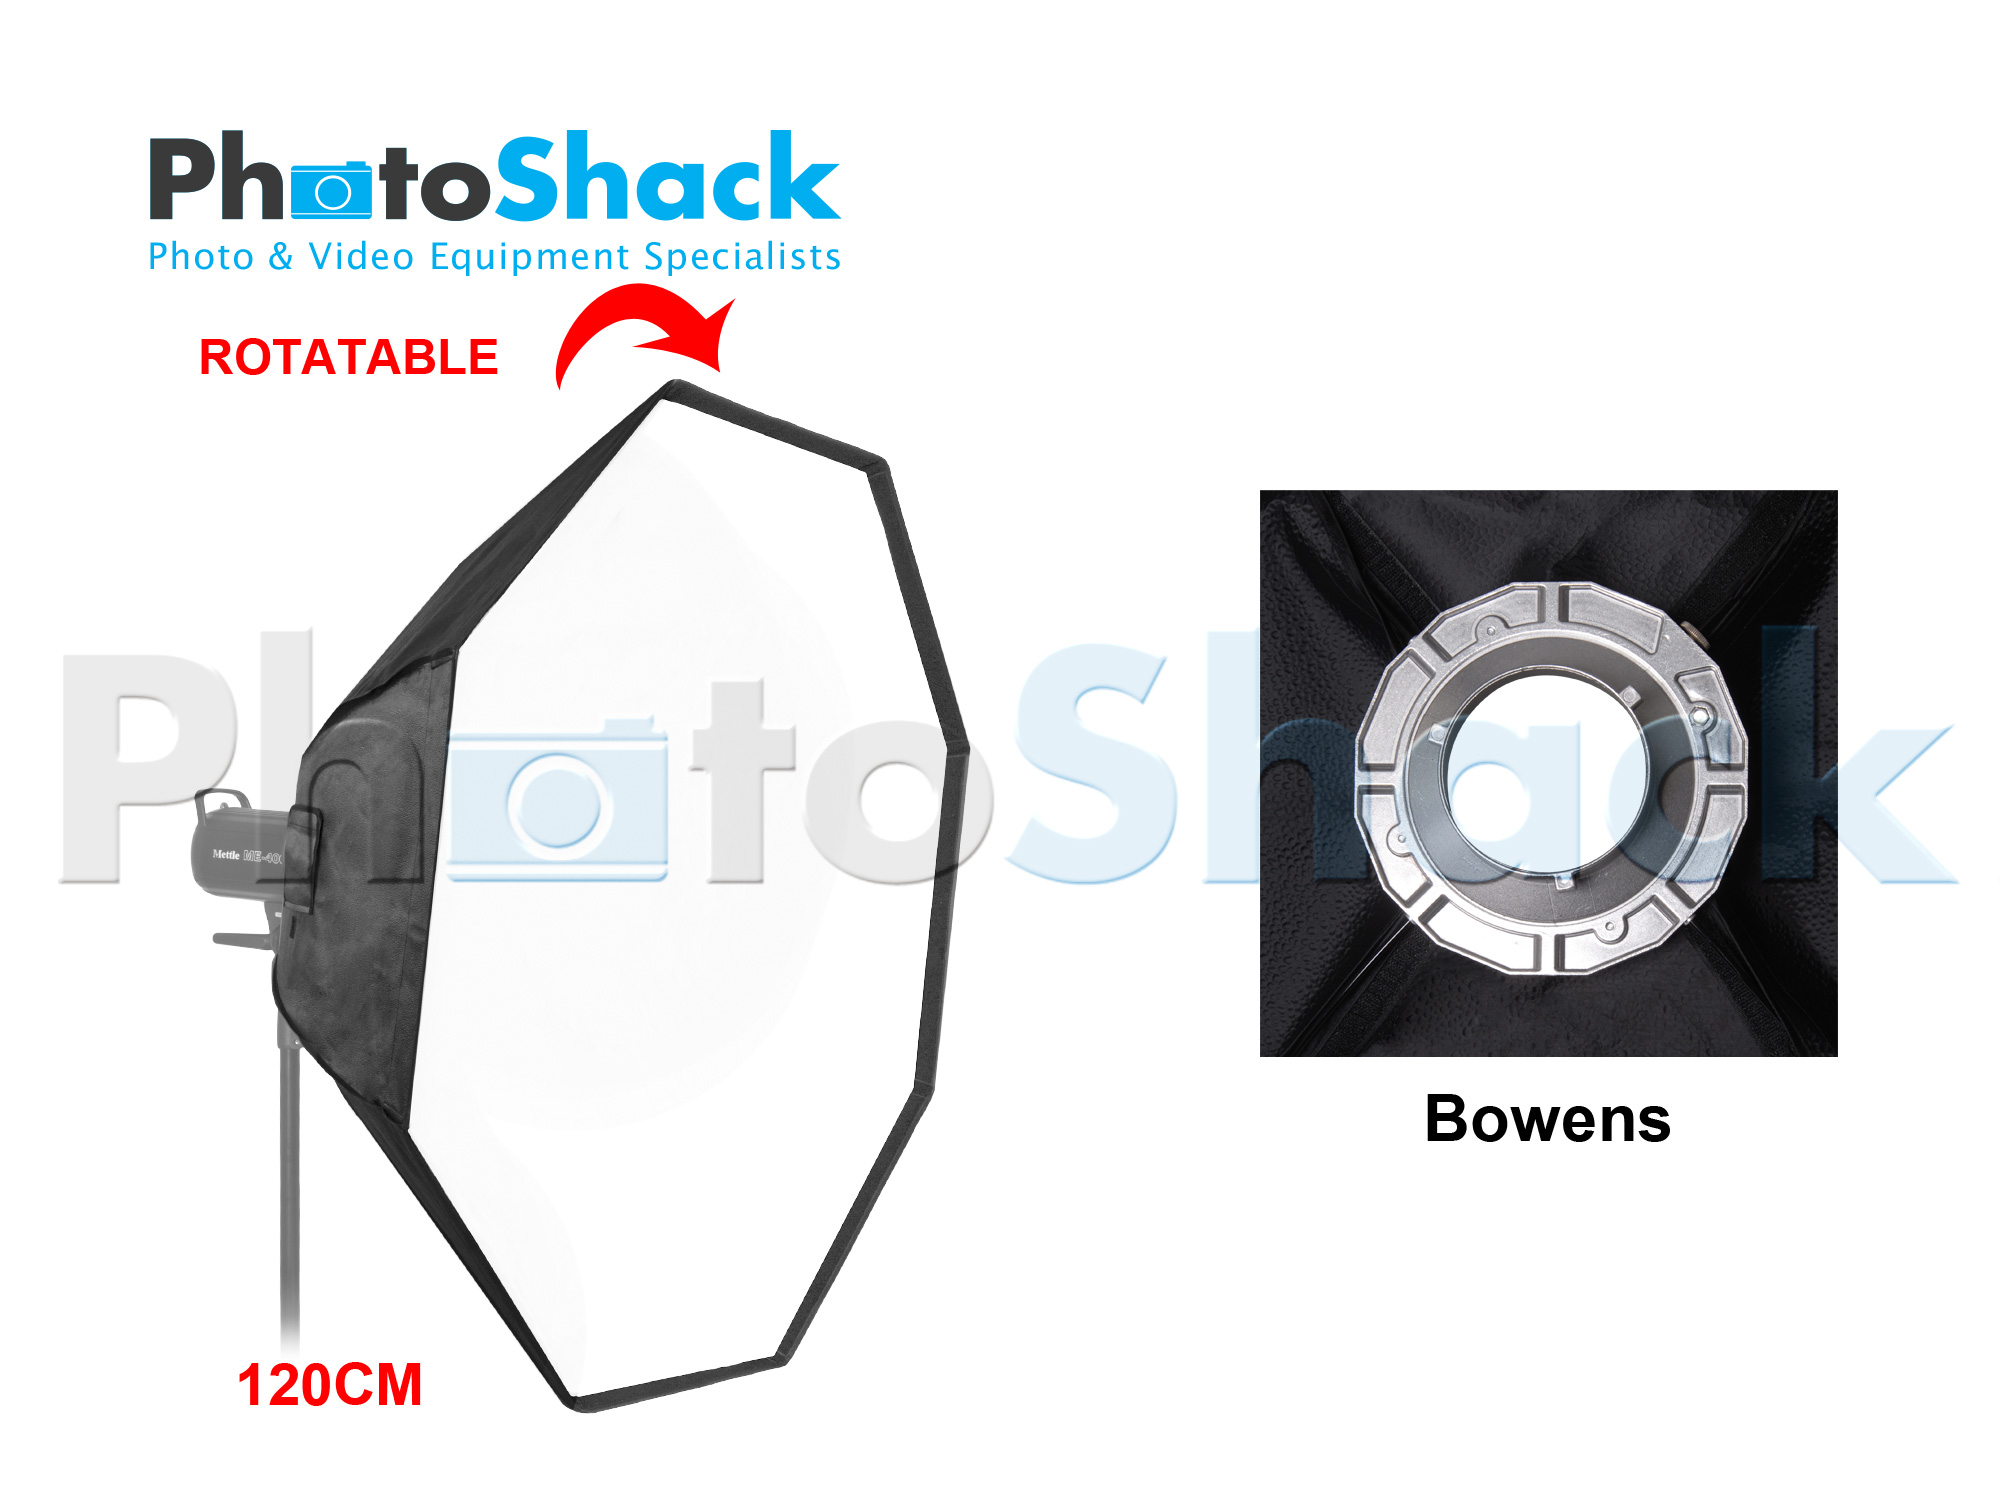 SOFTBOX for STUDIO LIGHTS (Octagonal 120 cm) - Bowens Adapter